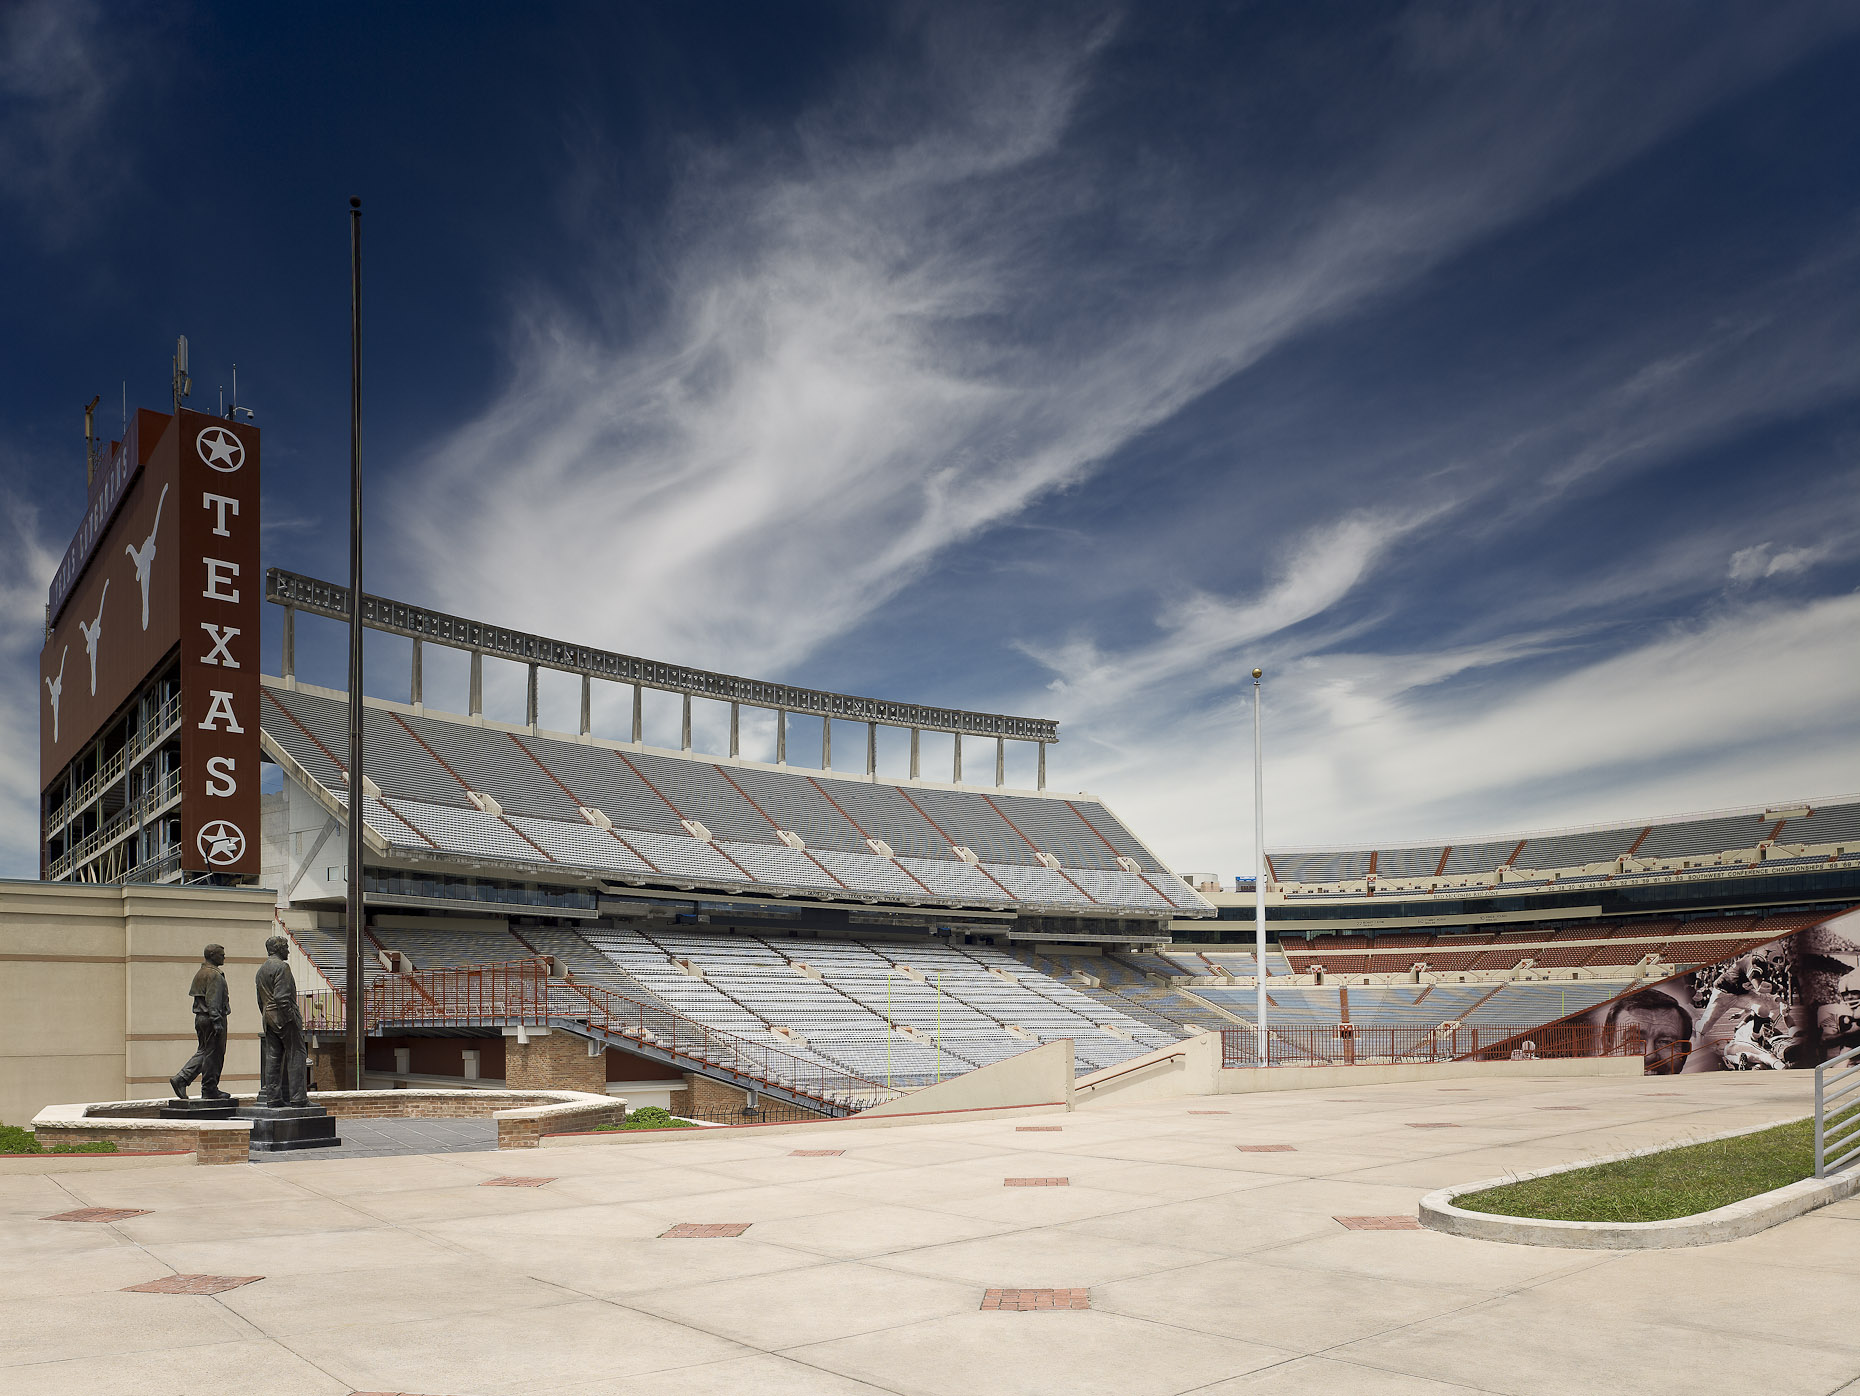 University of Texas at Austin Darrell K Royal Memorial Stadium by Heery International photographed by Brad Feinknopf based in Columbus, Ohio